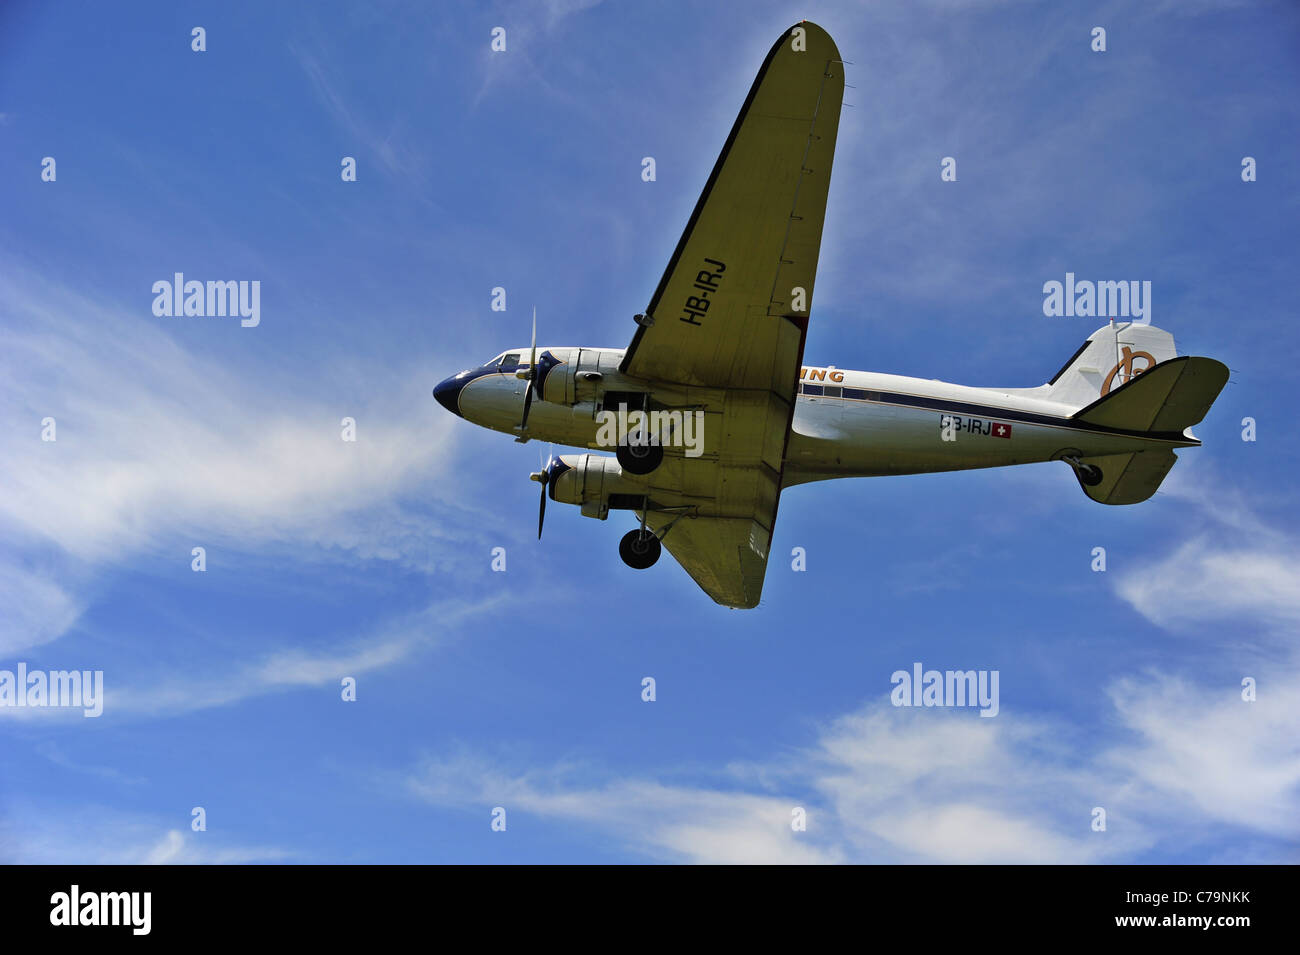 A vintage Douglas DC-3A coming in to land at an airfield Stock Photo